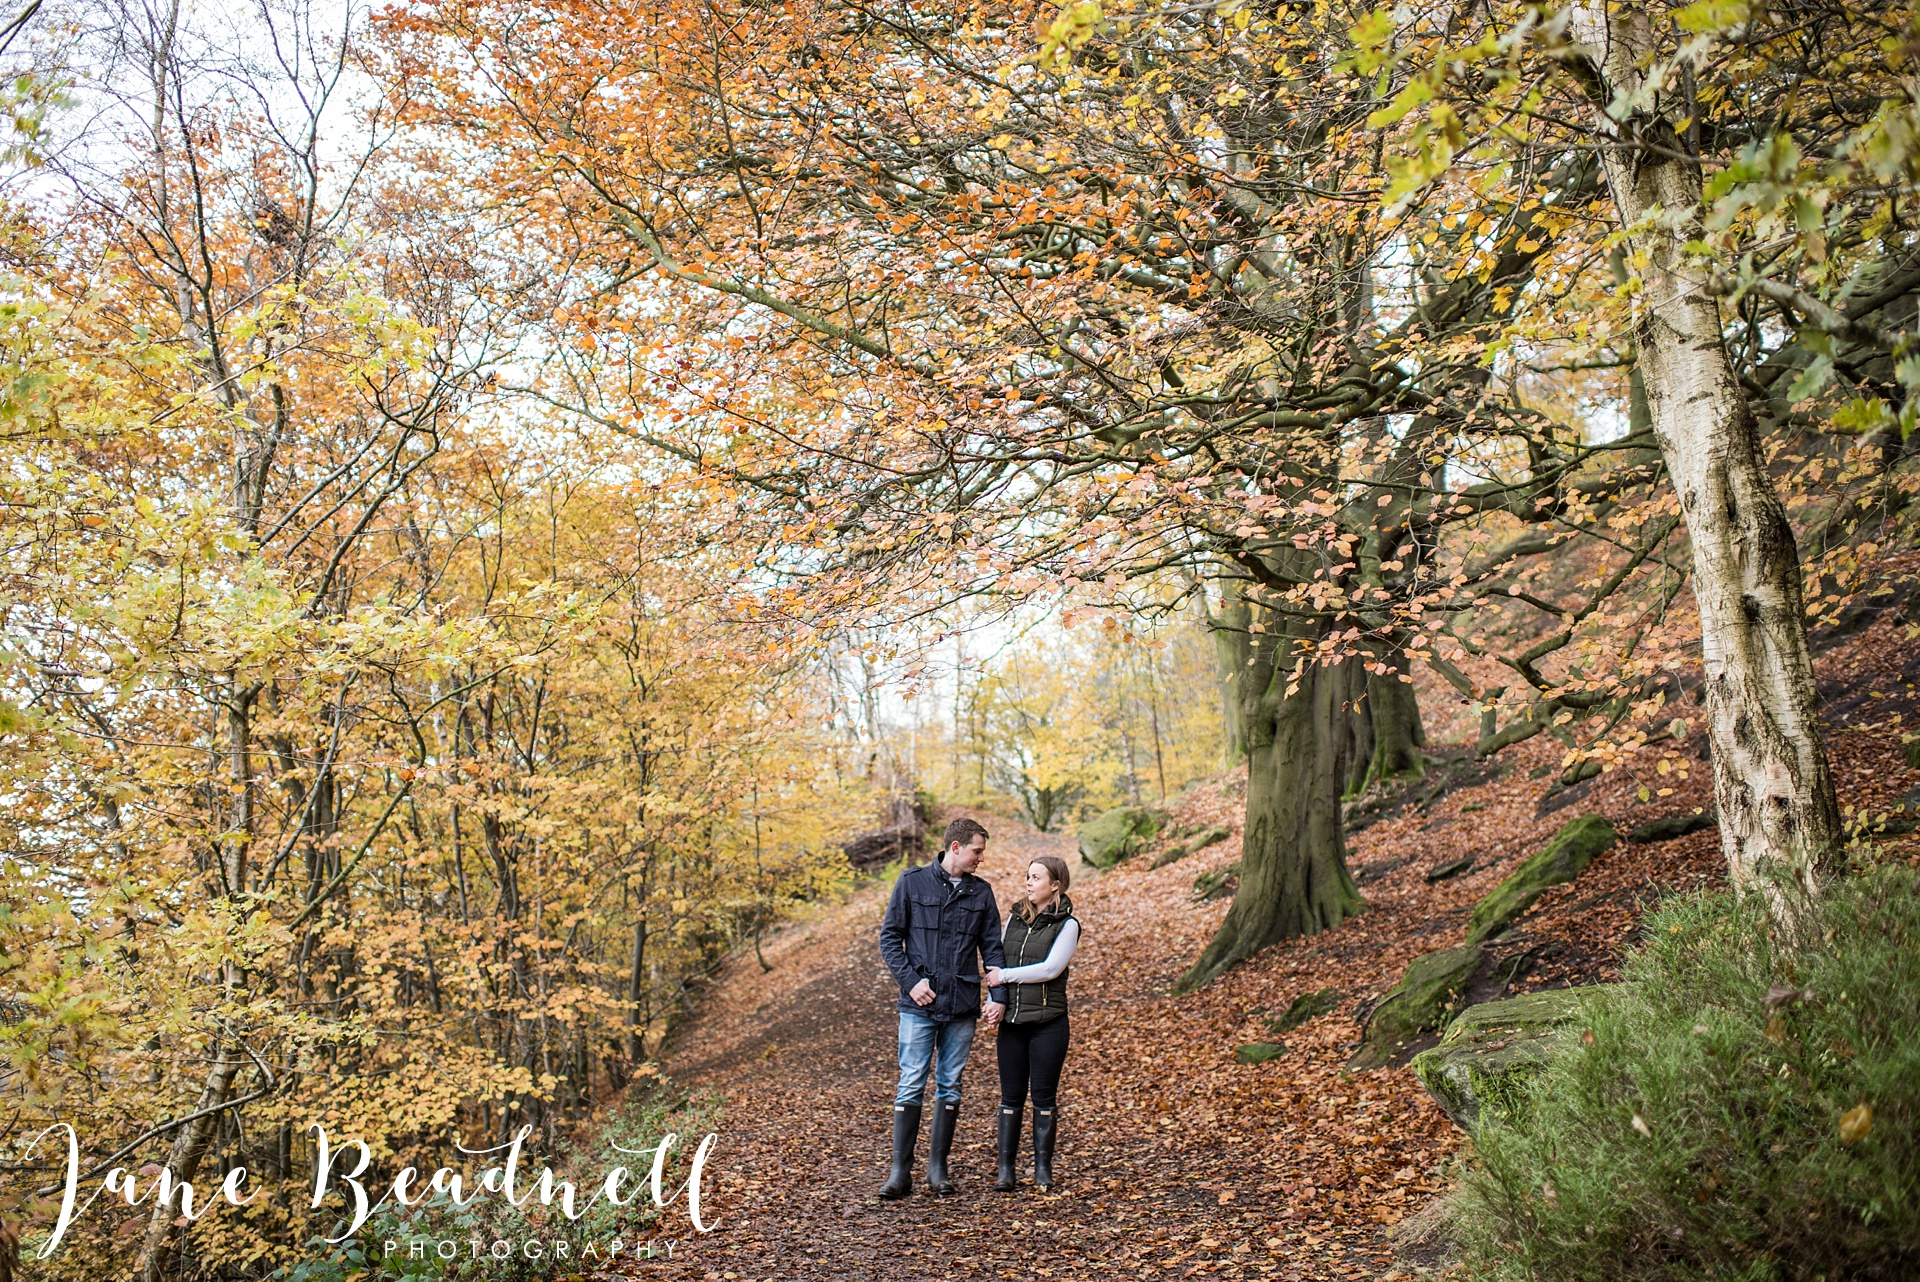 engagement-shoot-yorkshire-wedding-photographer-jane-beadnell-photography-uk-and-destination-wedding-photographer-engagement-shoot_0047